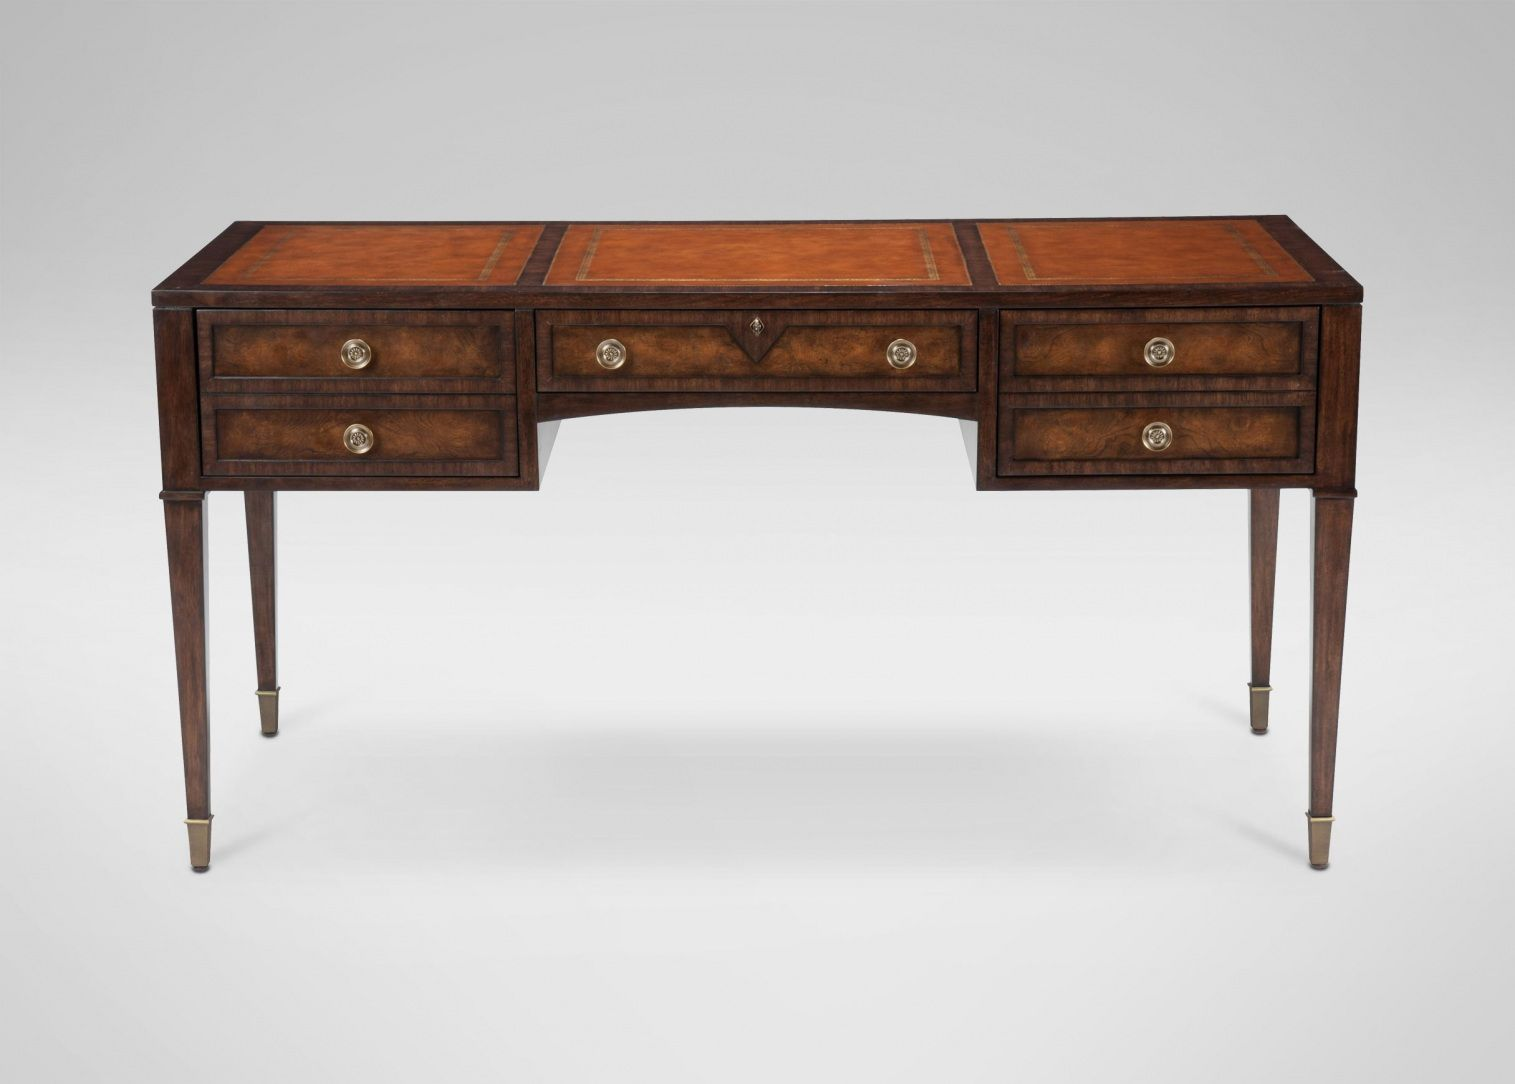 Charmant Ethan Allen Home Office Desks   Country Home Office Furniture Check More At  Http:/